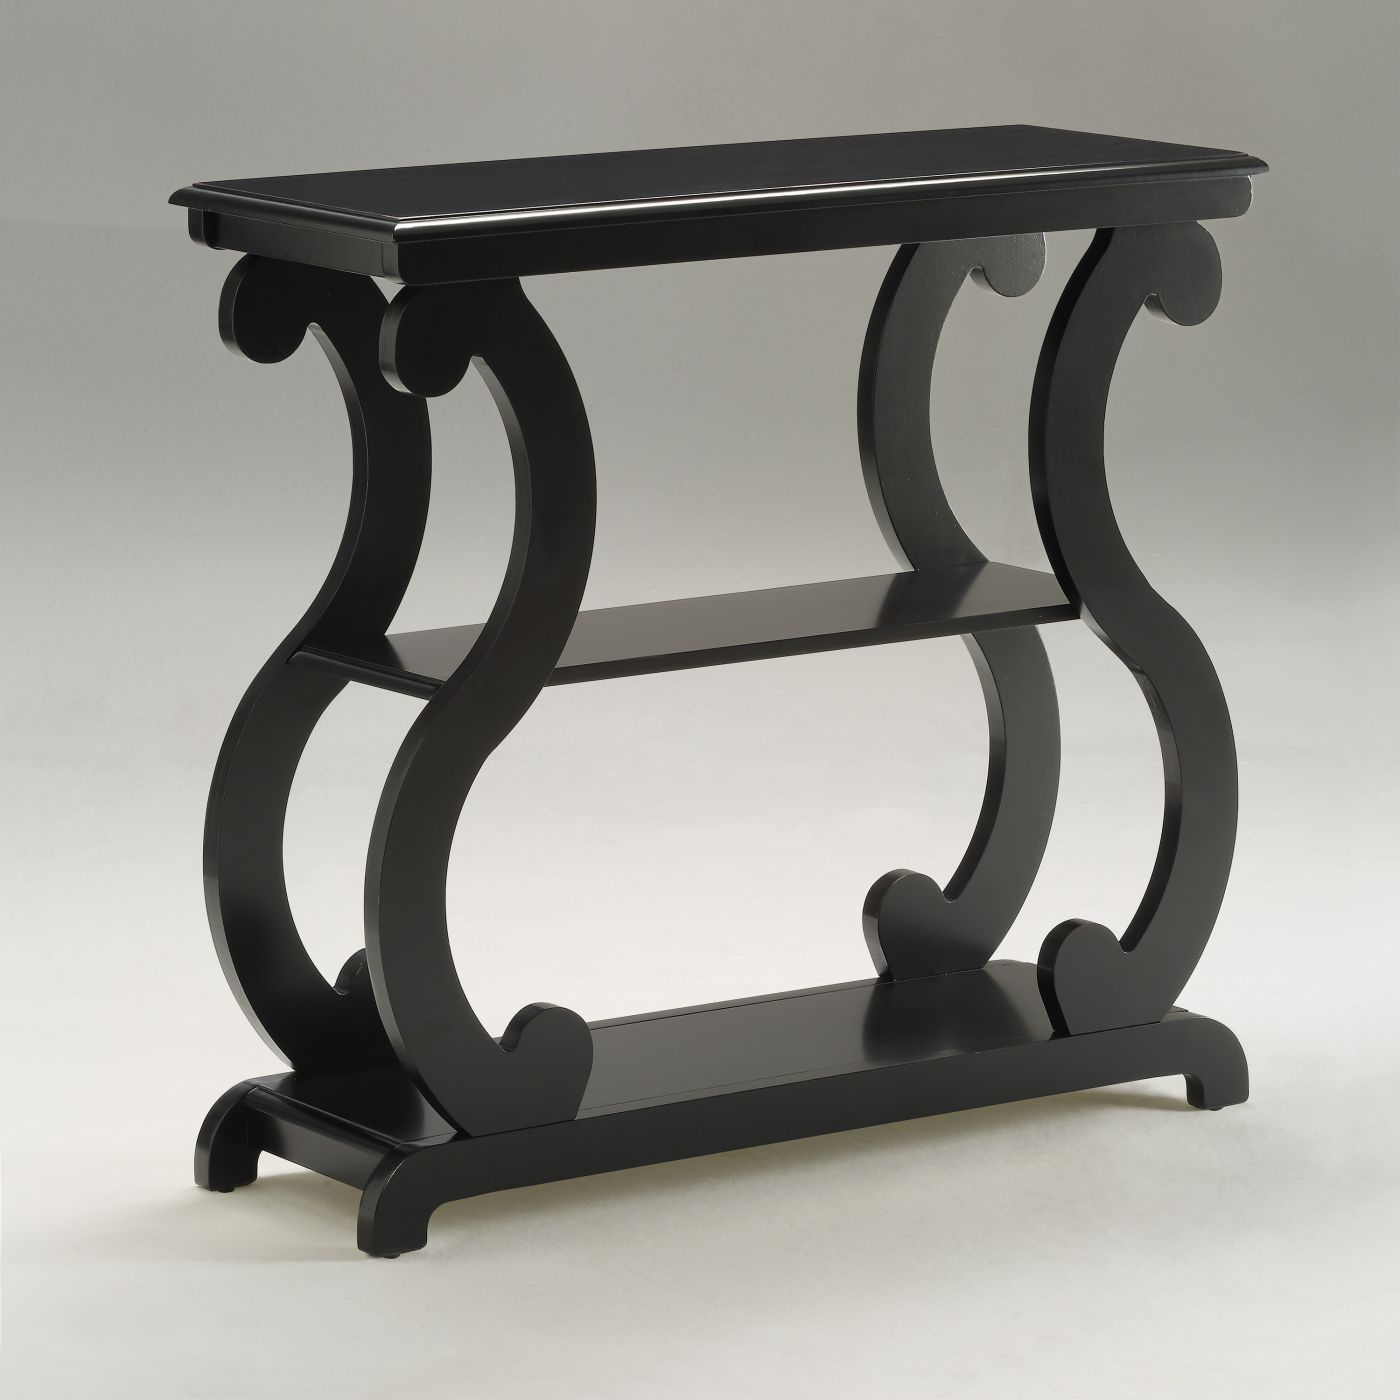 Lucy Black Sofa Table Console | 7915 Bk | Crown Mark With Lucy Dark Grey Sofa Chairs (View 13 of 25)